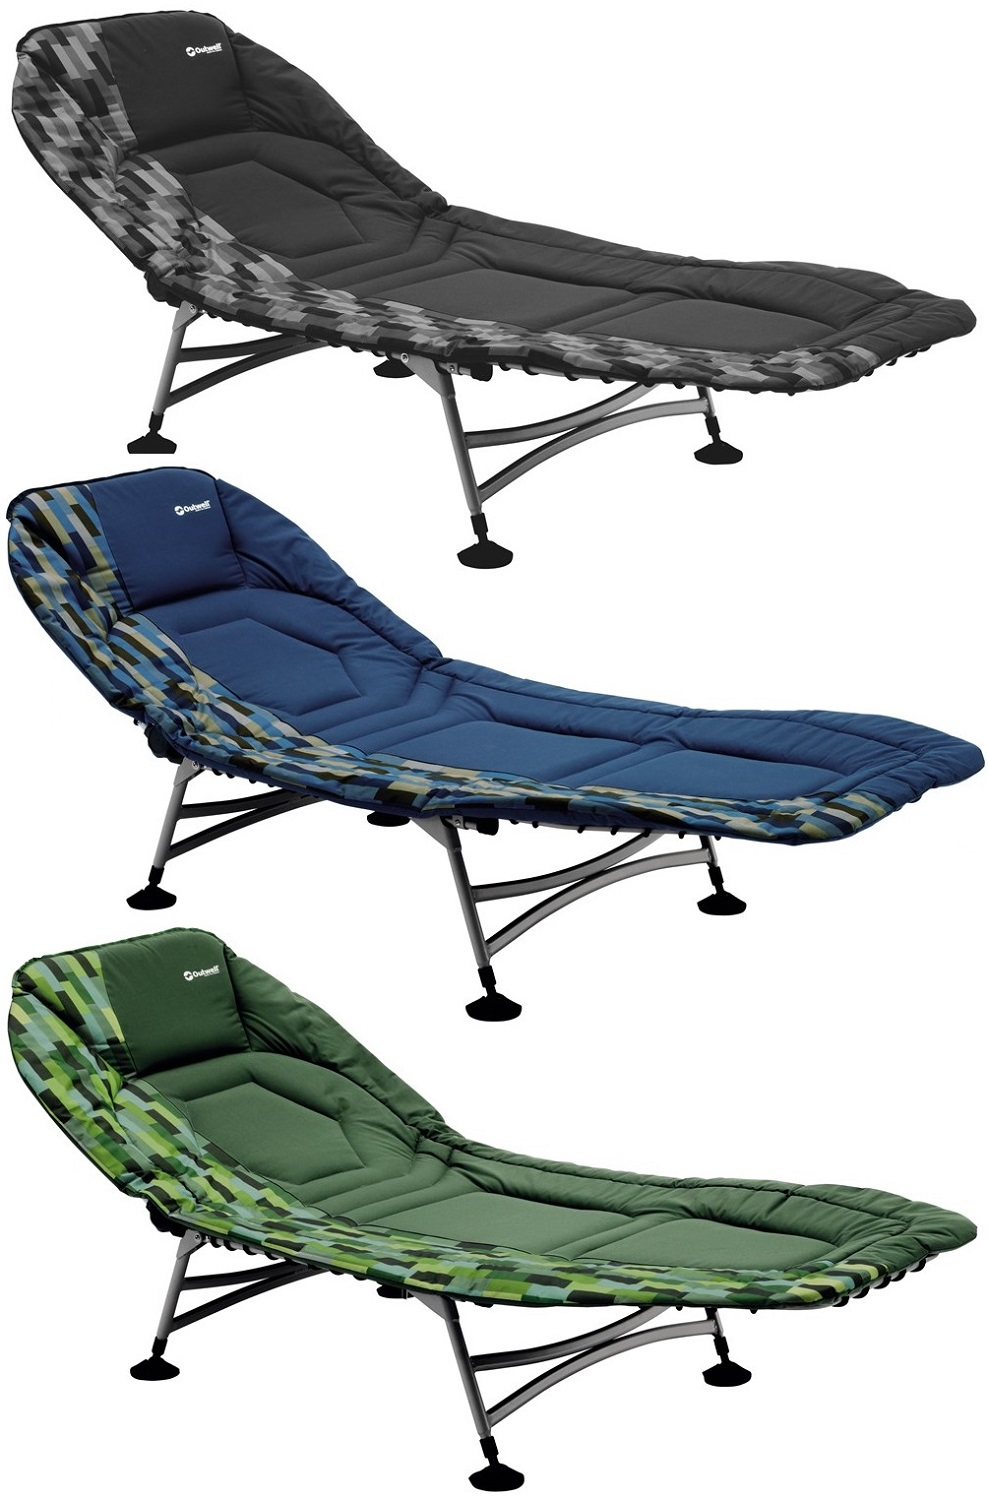 Outwell Cordoba Camping Cot/Bed Lounger Relaxer Folding